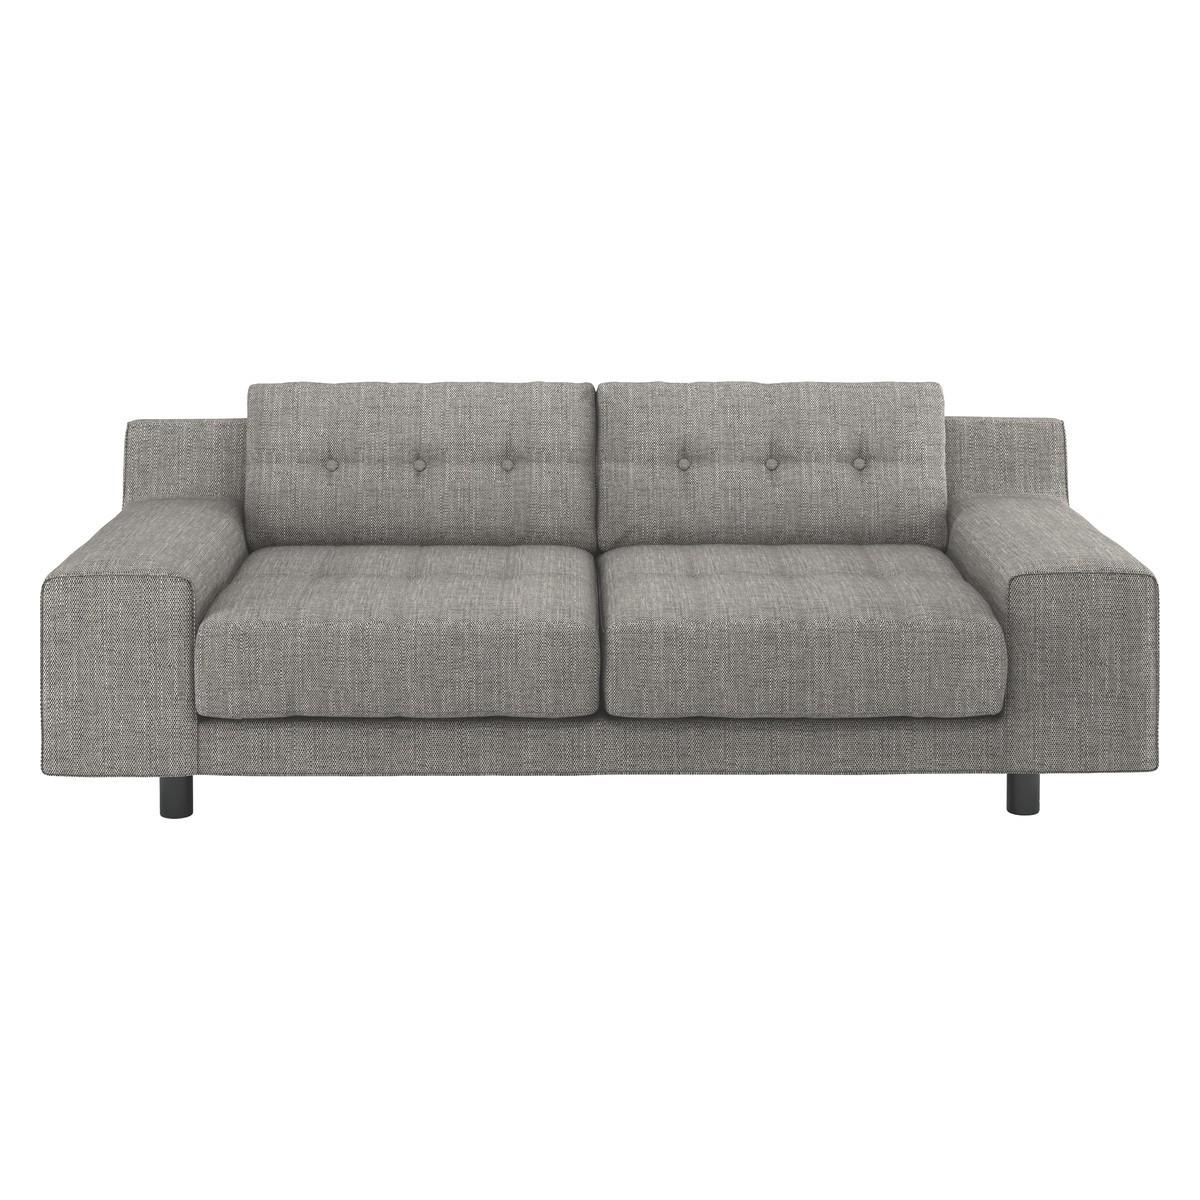 Hendricks Black And White Italian Woven Fabric 2 Seater Sofa | Buy Throughout Black 2 Seater Sofas (View 16 of 20)